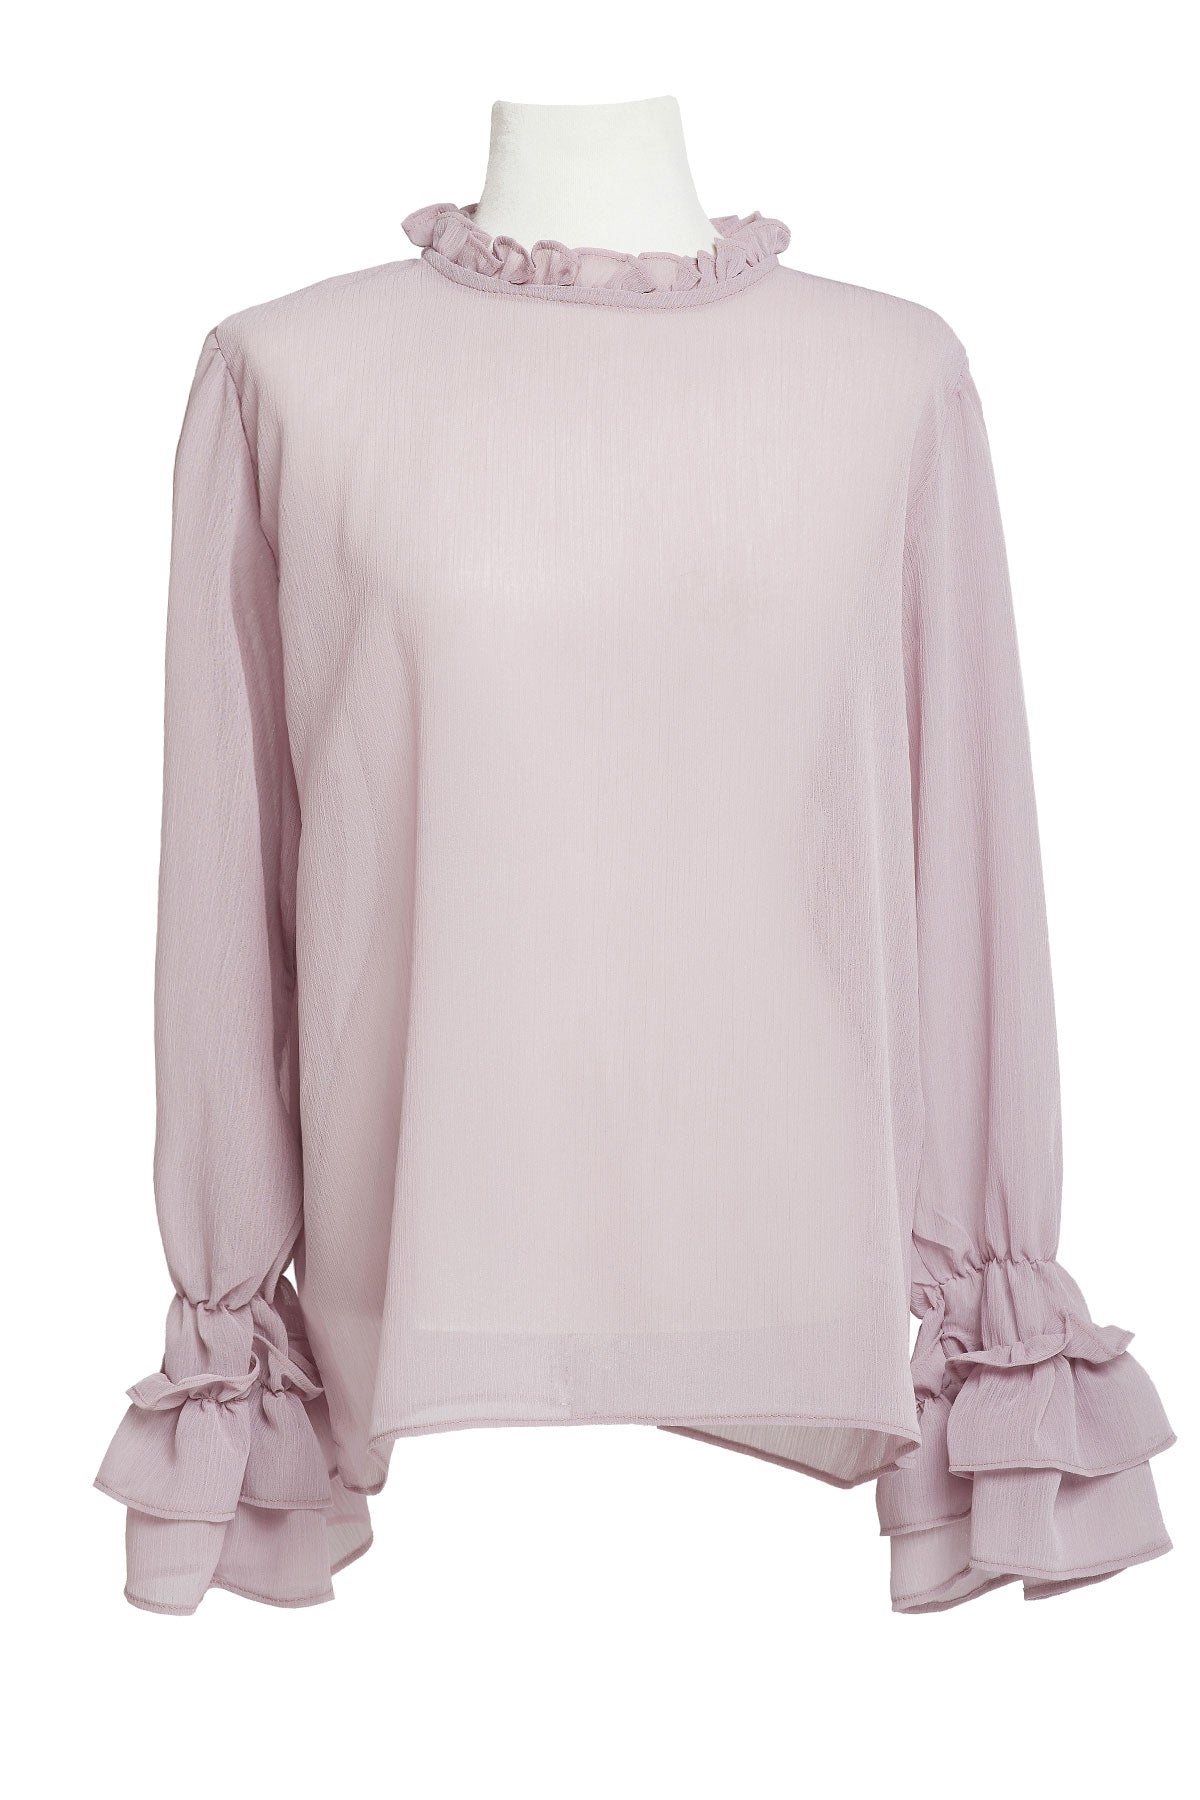 Alaina Ruffle Blouse-2 Colors